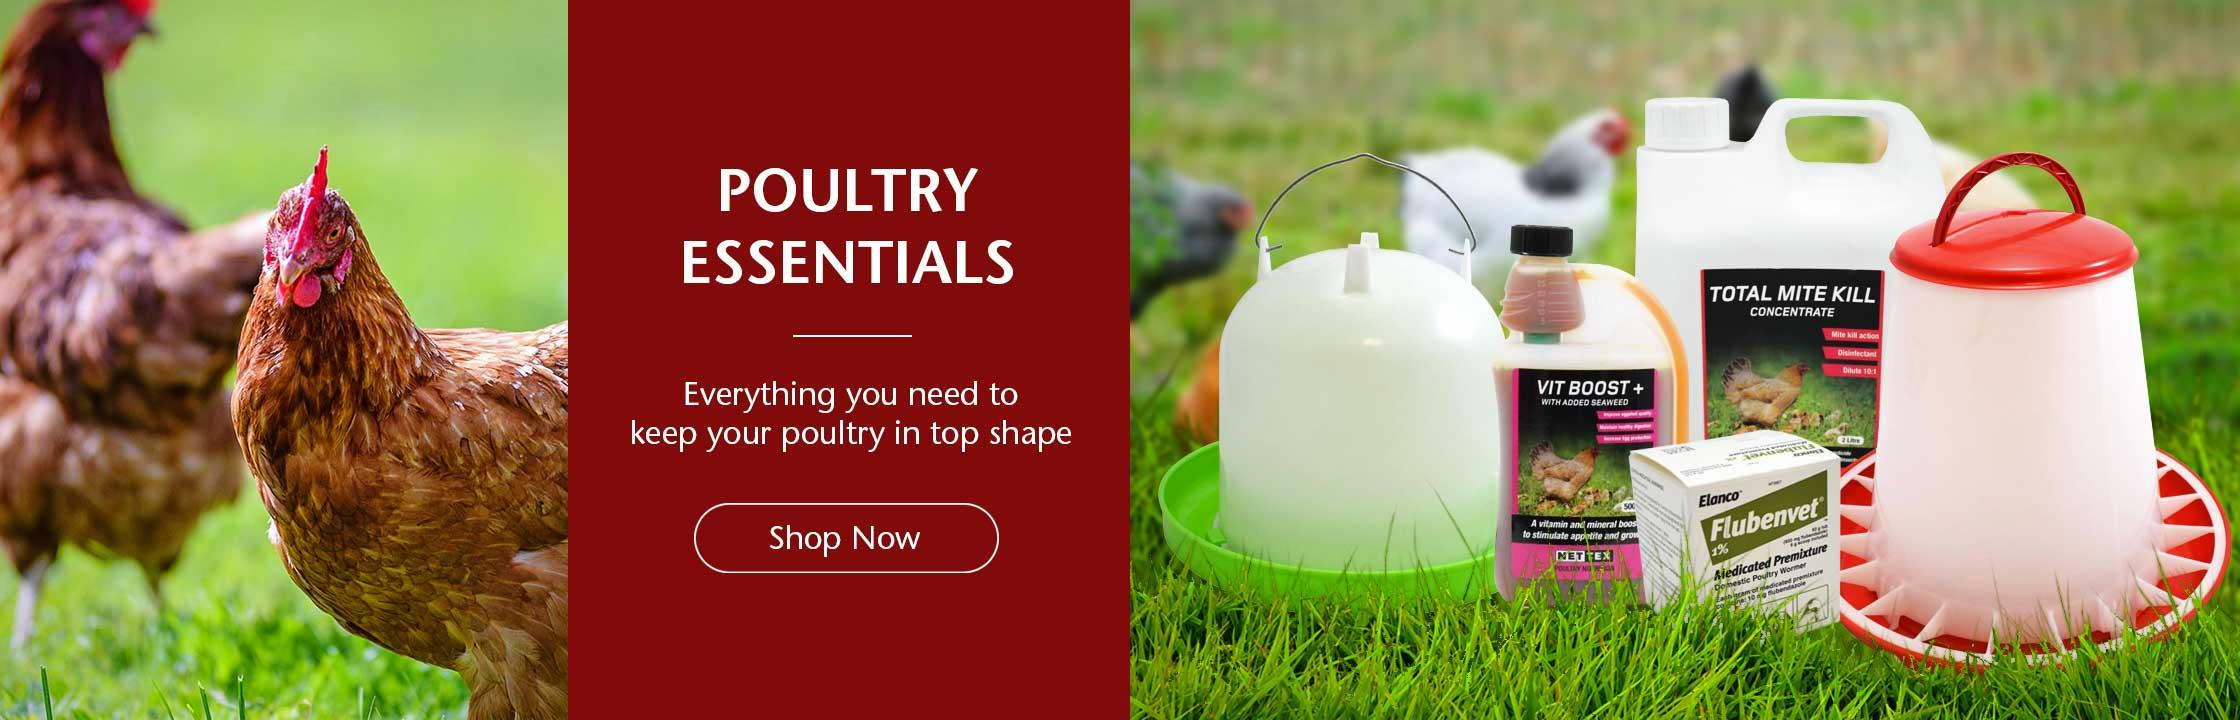 Poultry Essentials